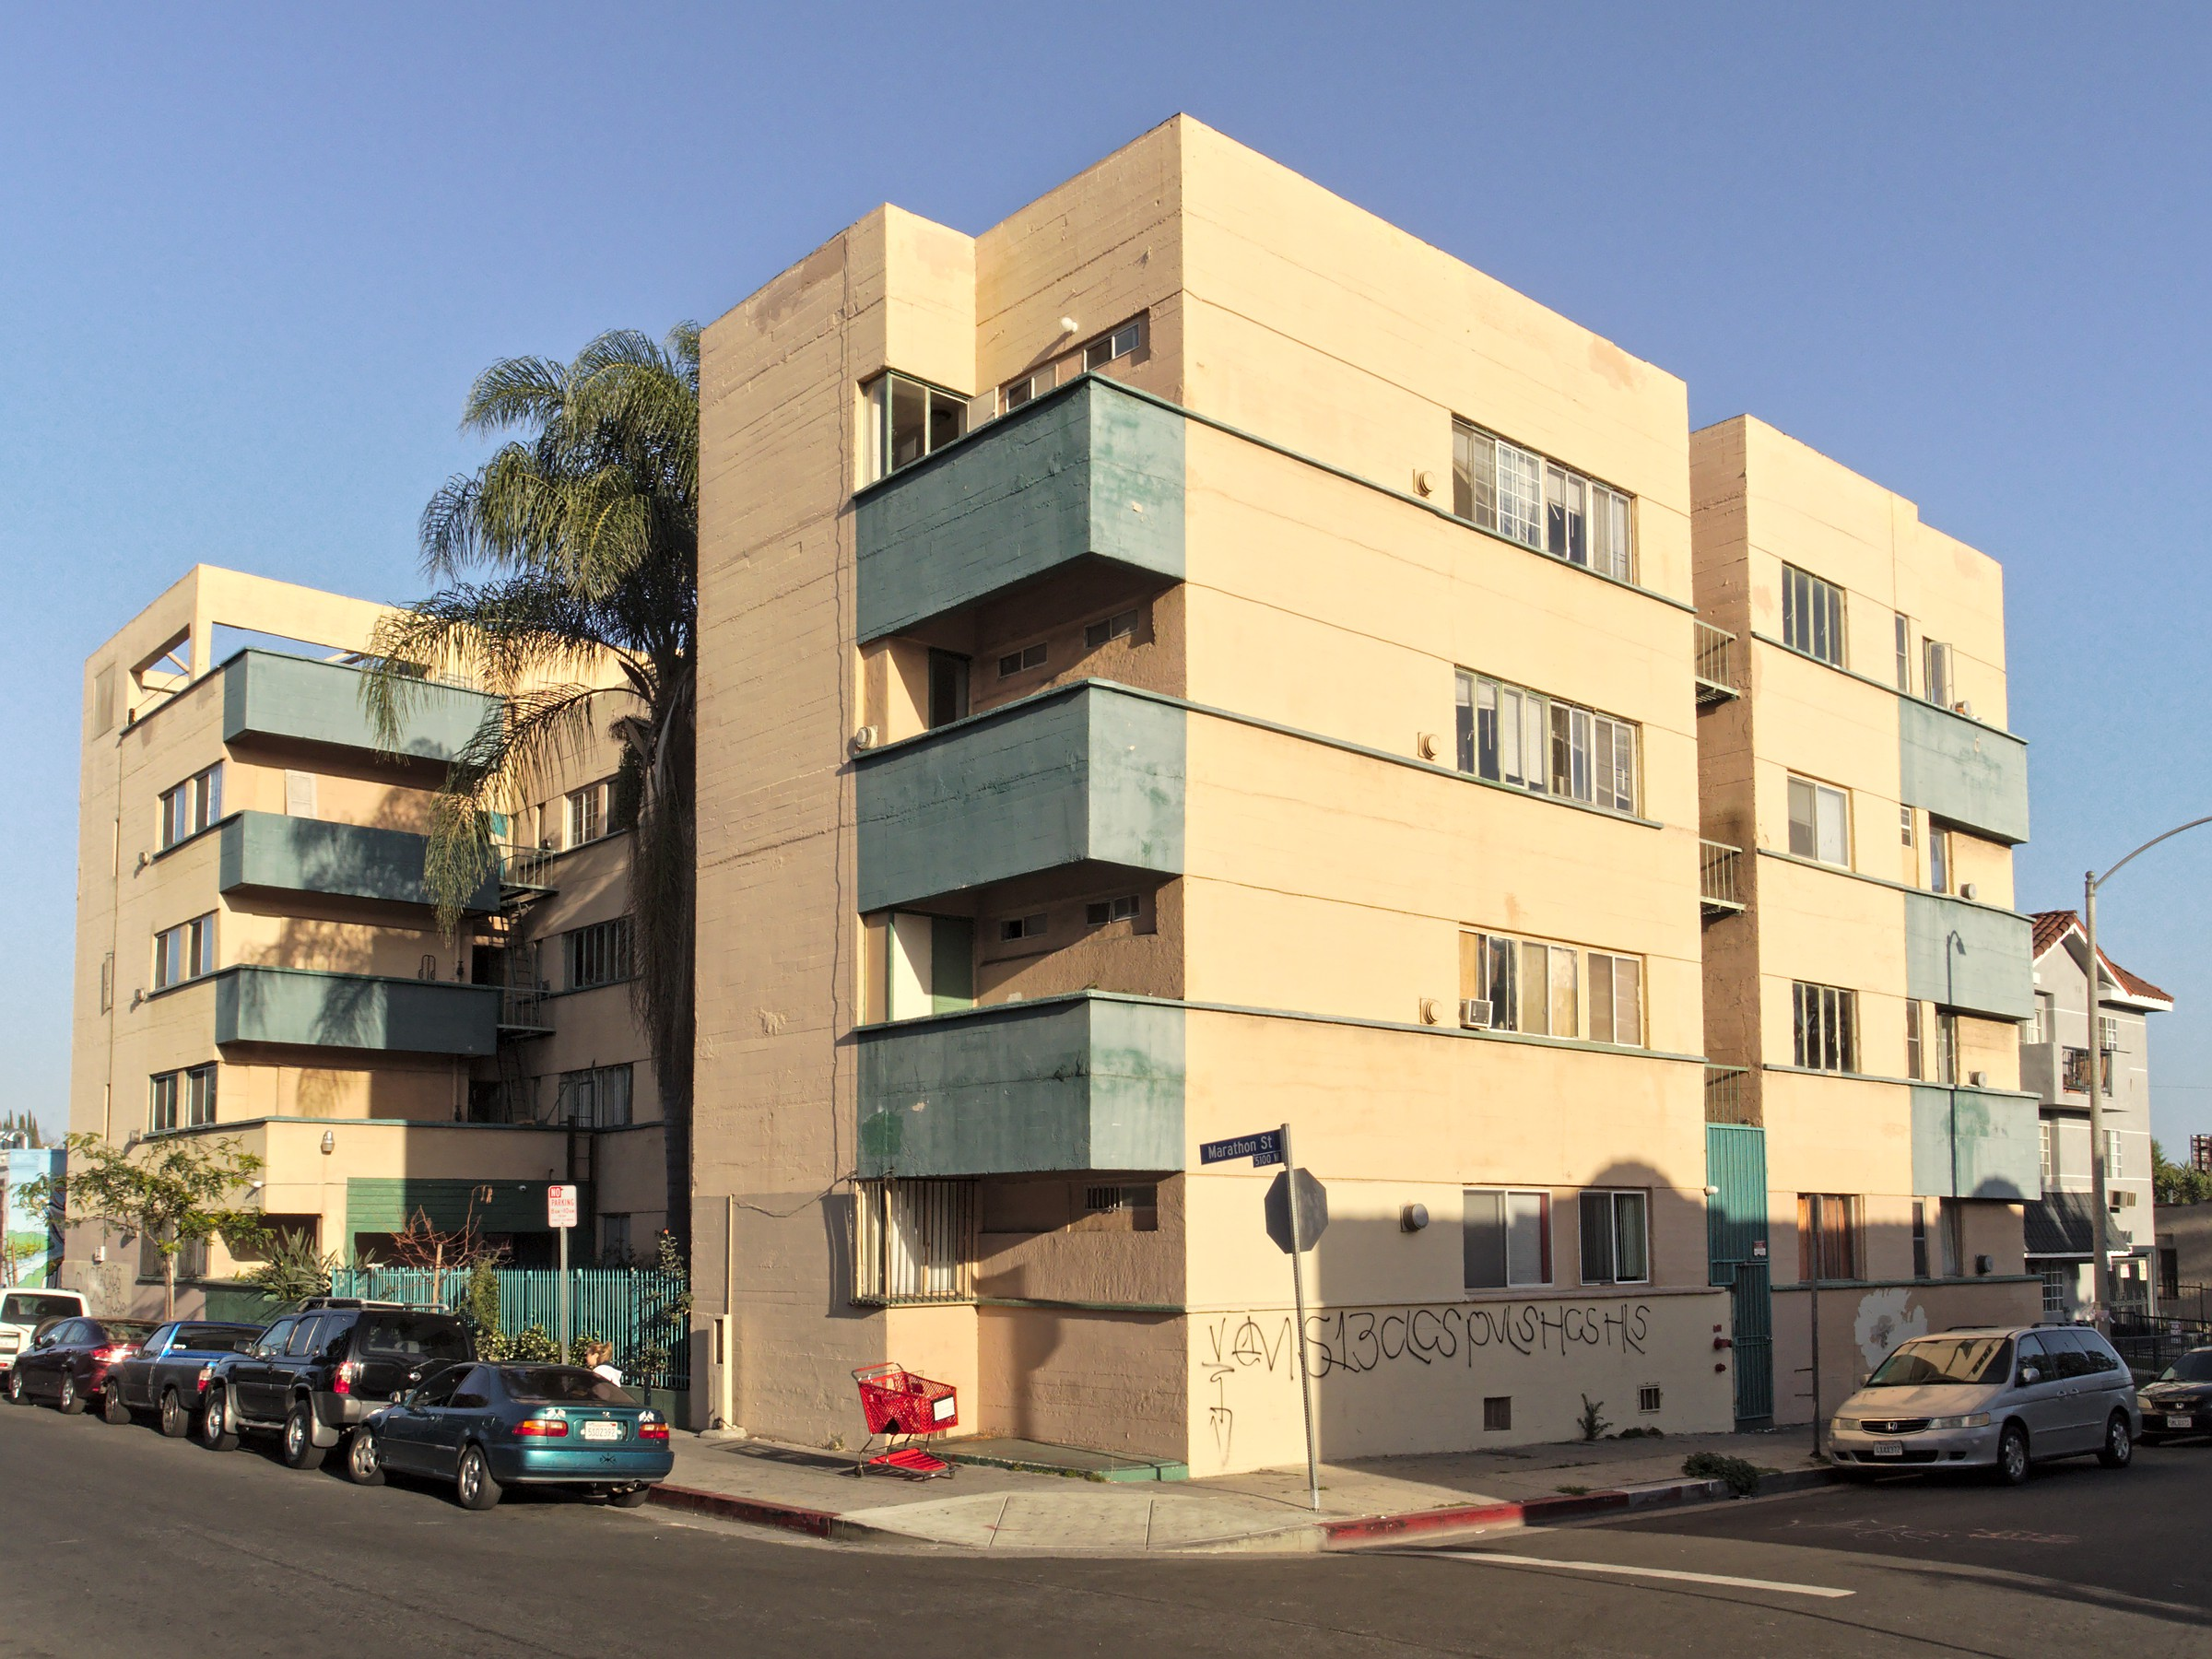 A Richard Neutra-designed apartment block